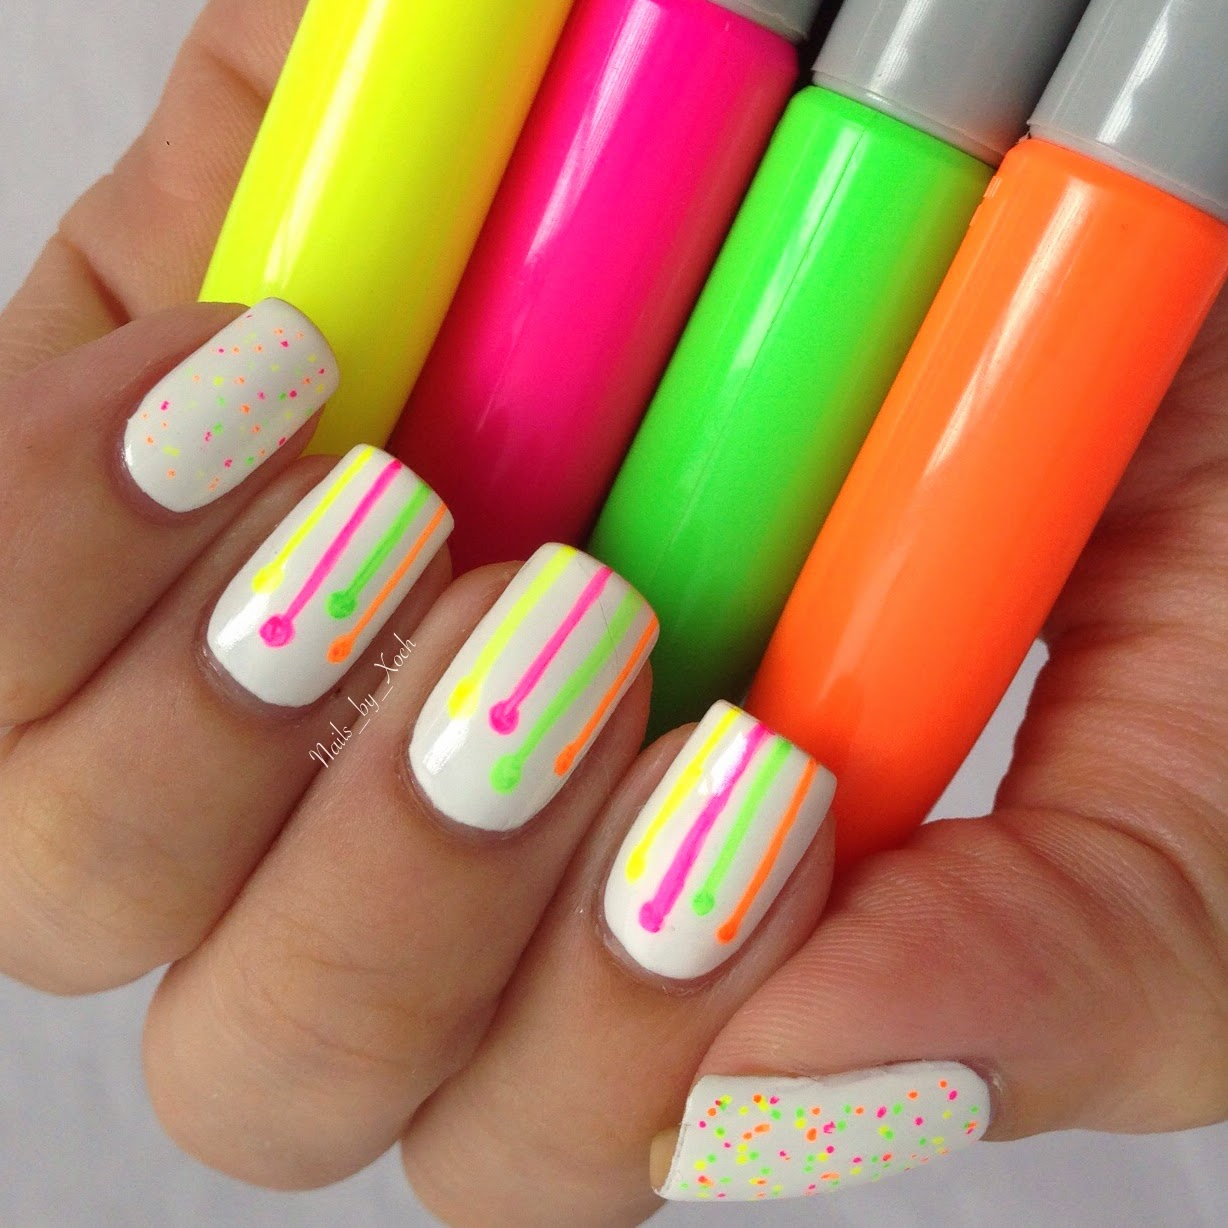 Nails by Xoch: Sharpie Neon Design